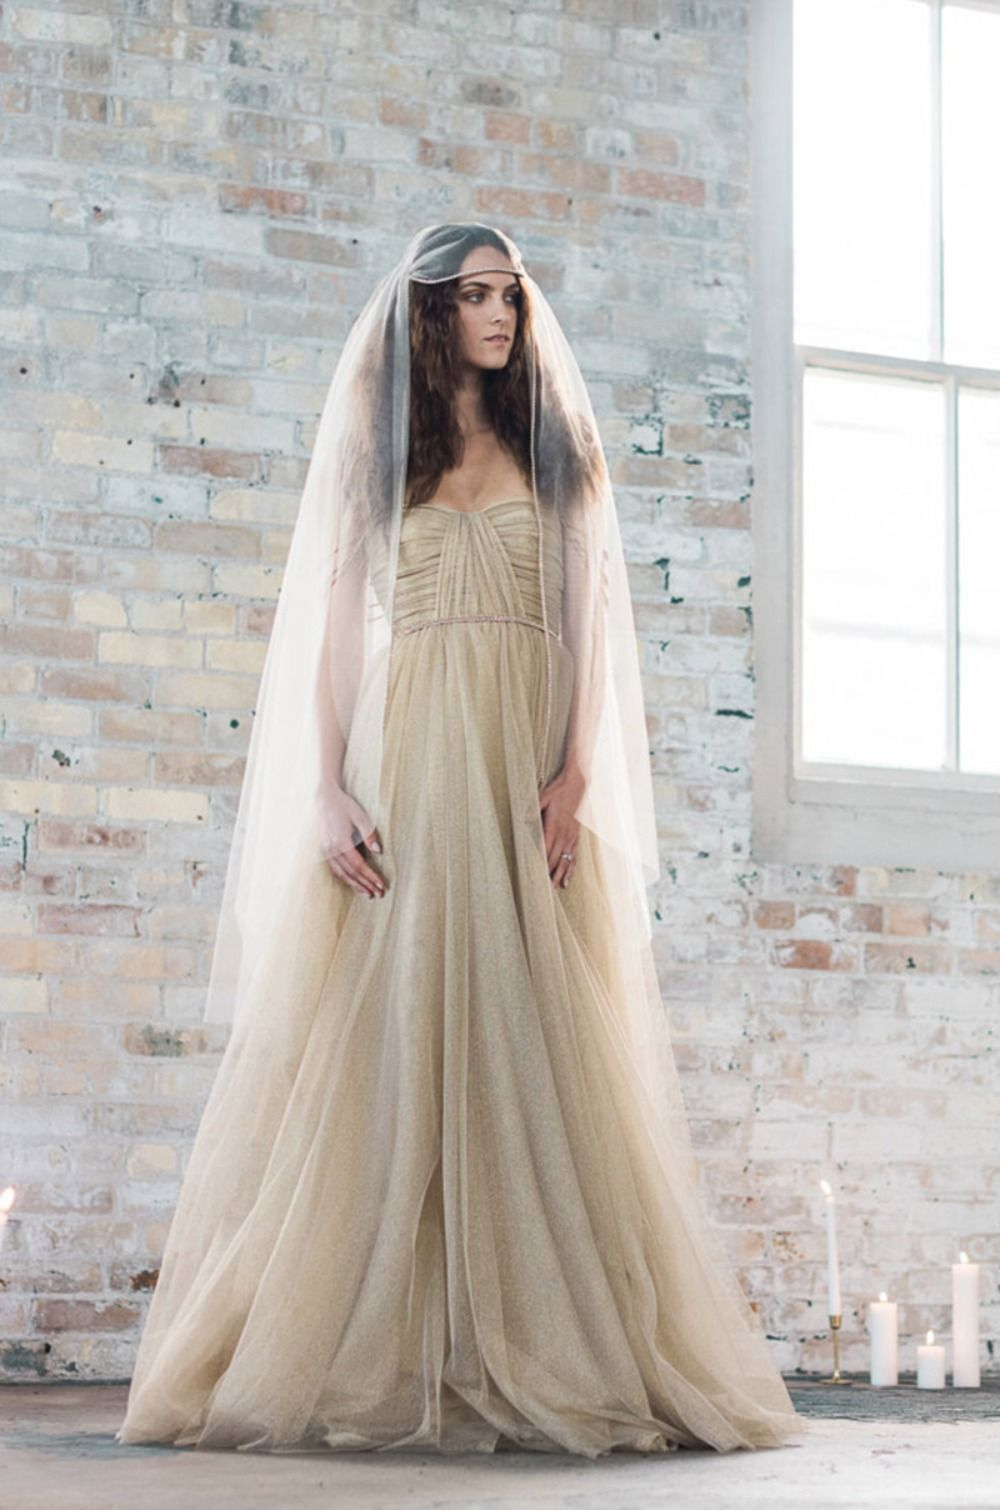 12 dreamy wedding dresses on etsy wedding dress weddings and 12 dreamy wedding dresses on etsy ombrellifo Image collections